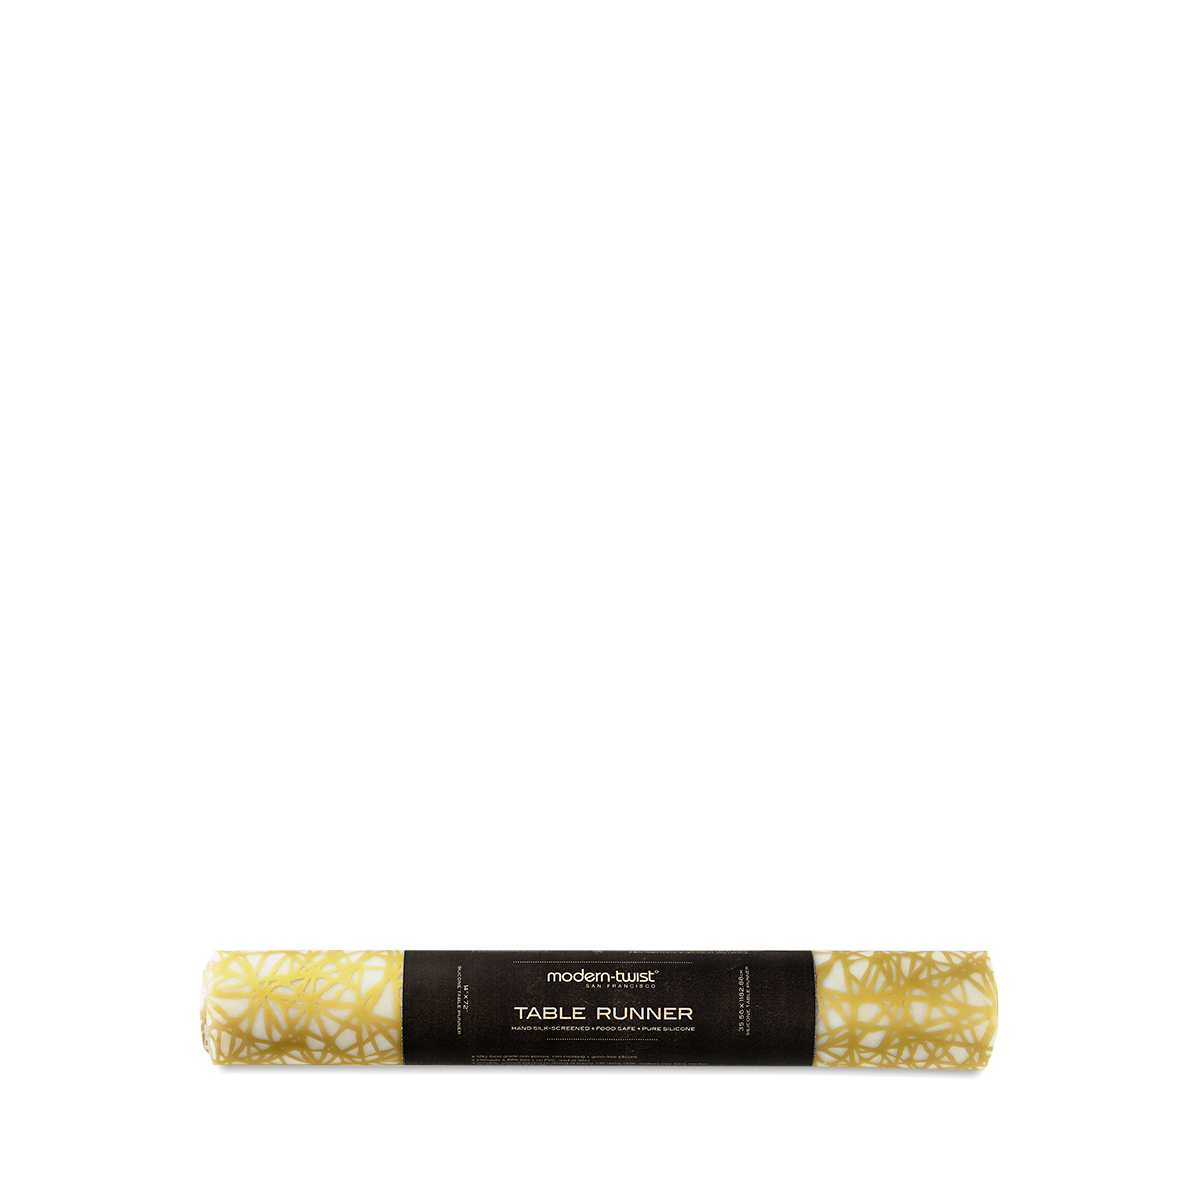 Charmant Twine Silicon Table Runner, Gold. Thrive · Home · Modern Twist